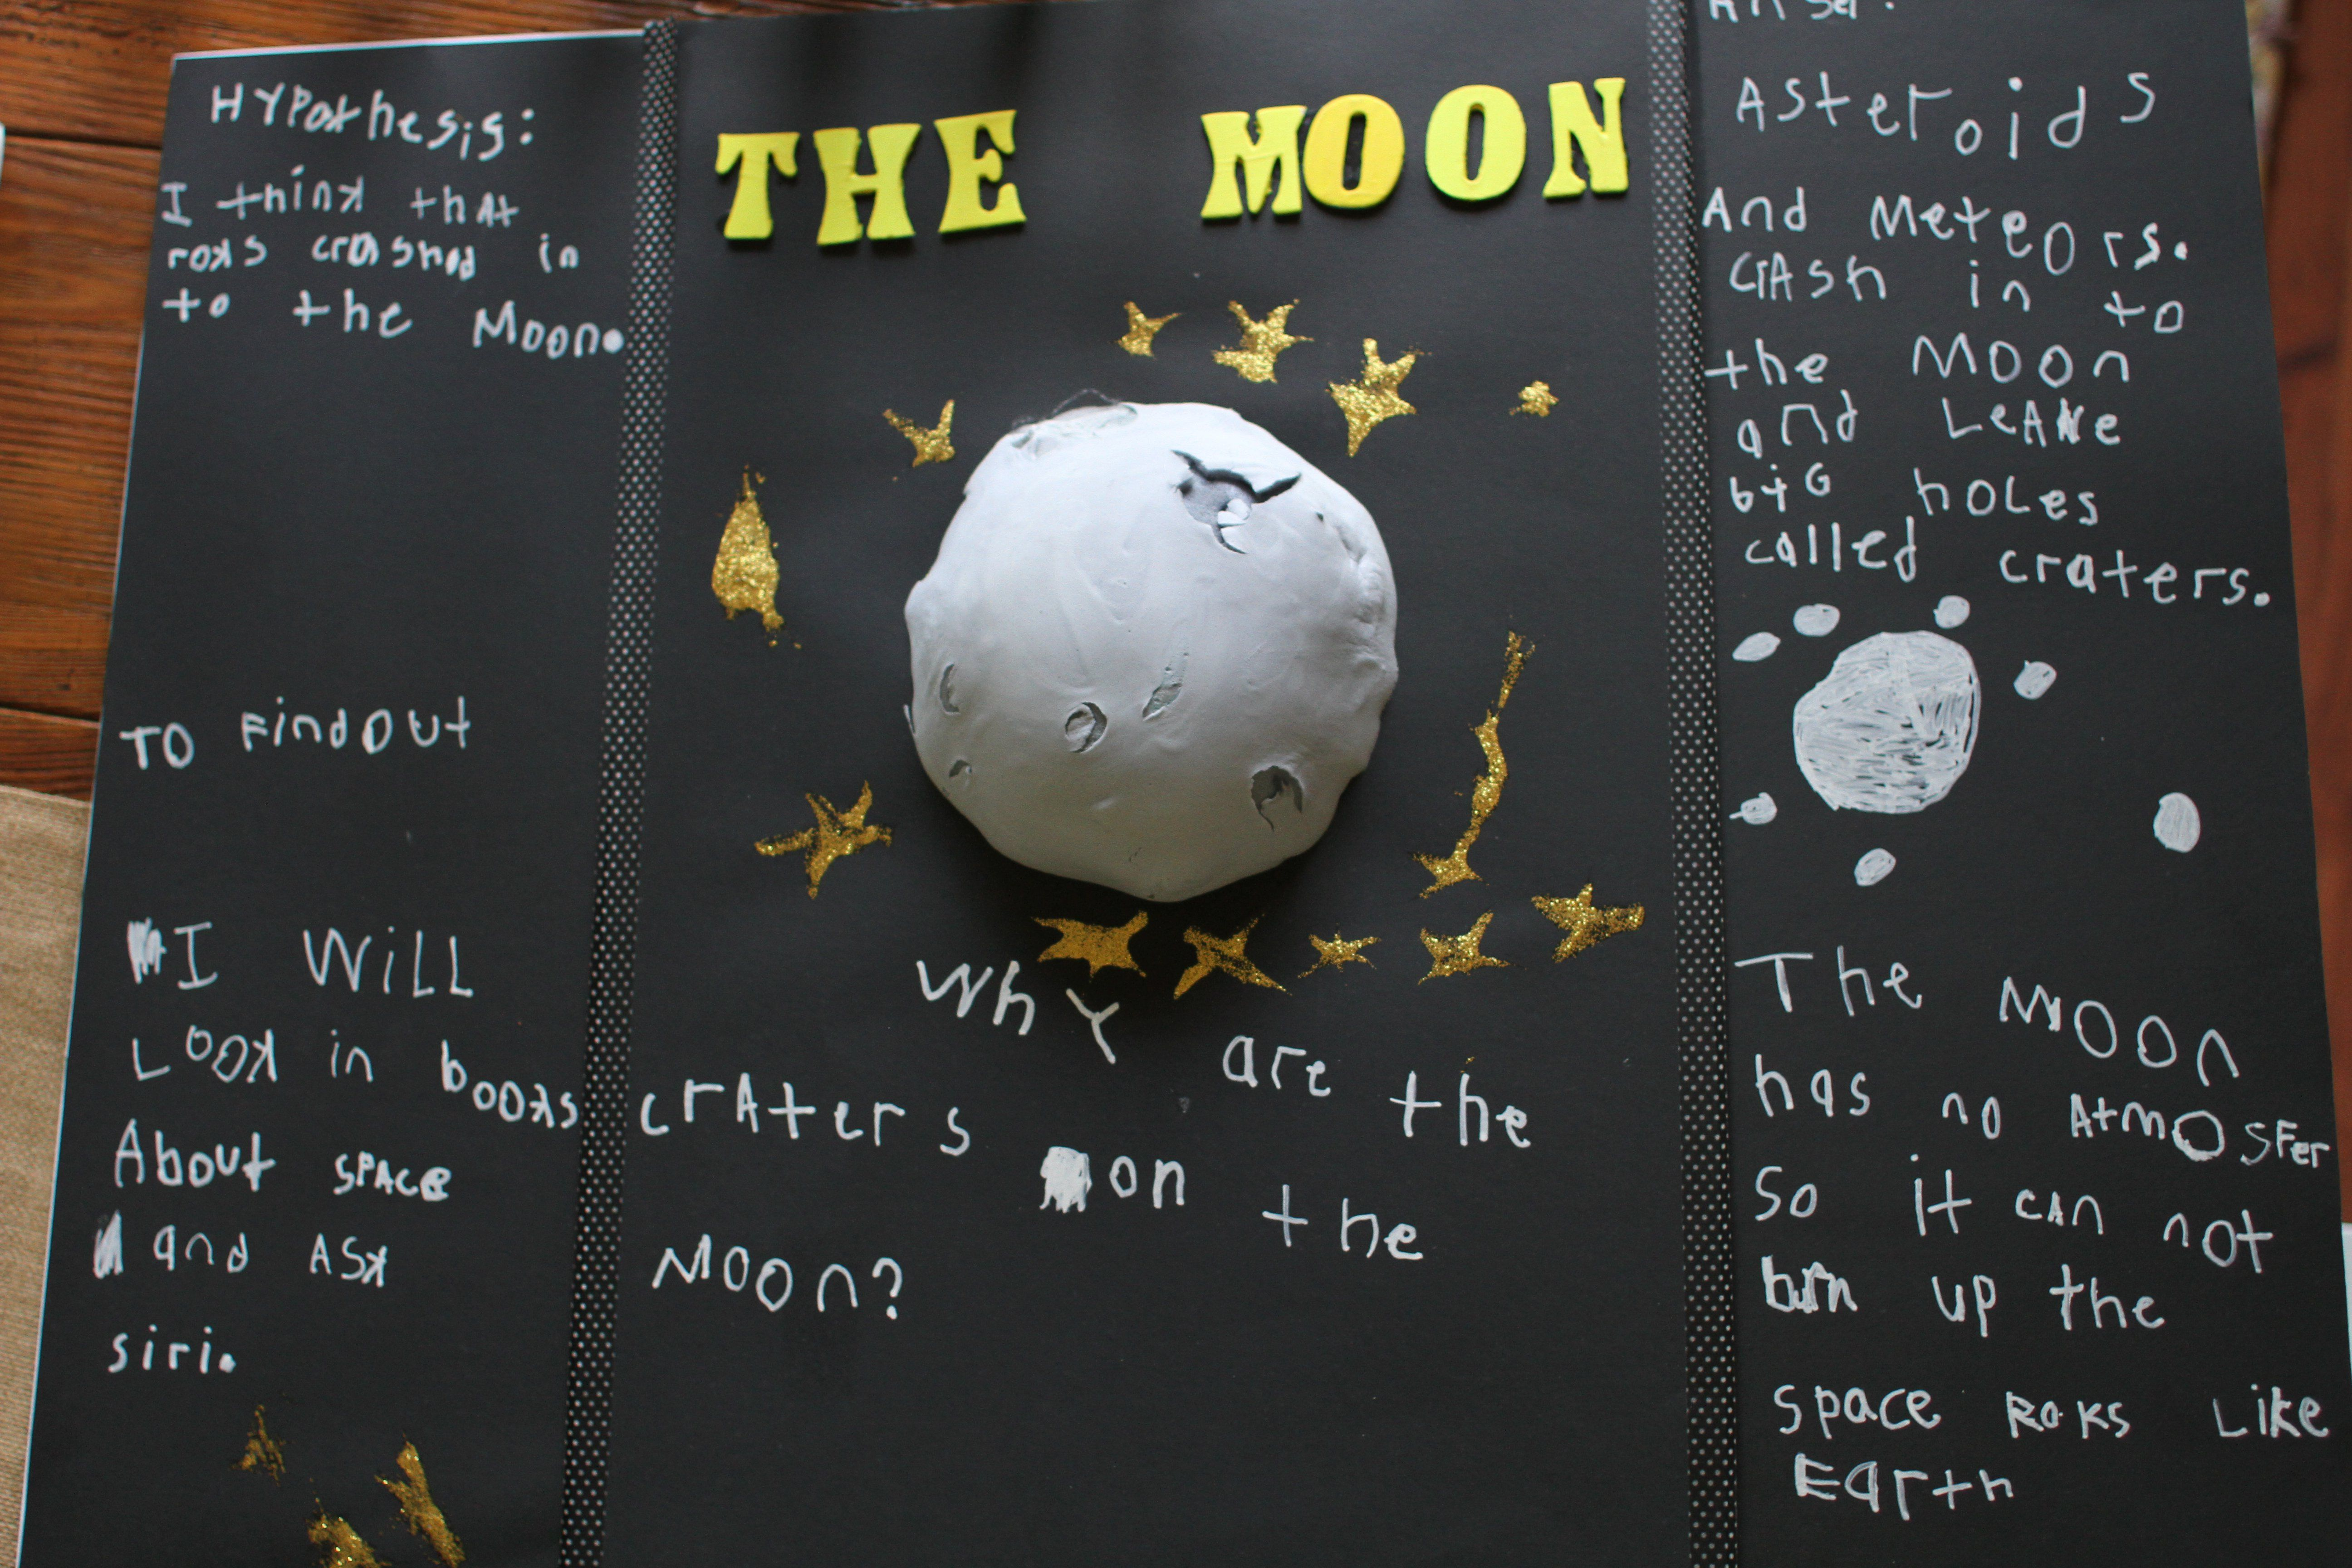 best ideas about craters on the moon space 17 best ideas about craters on the moon space activities space activities for kids and space crafts